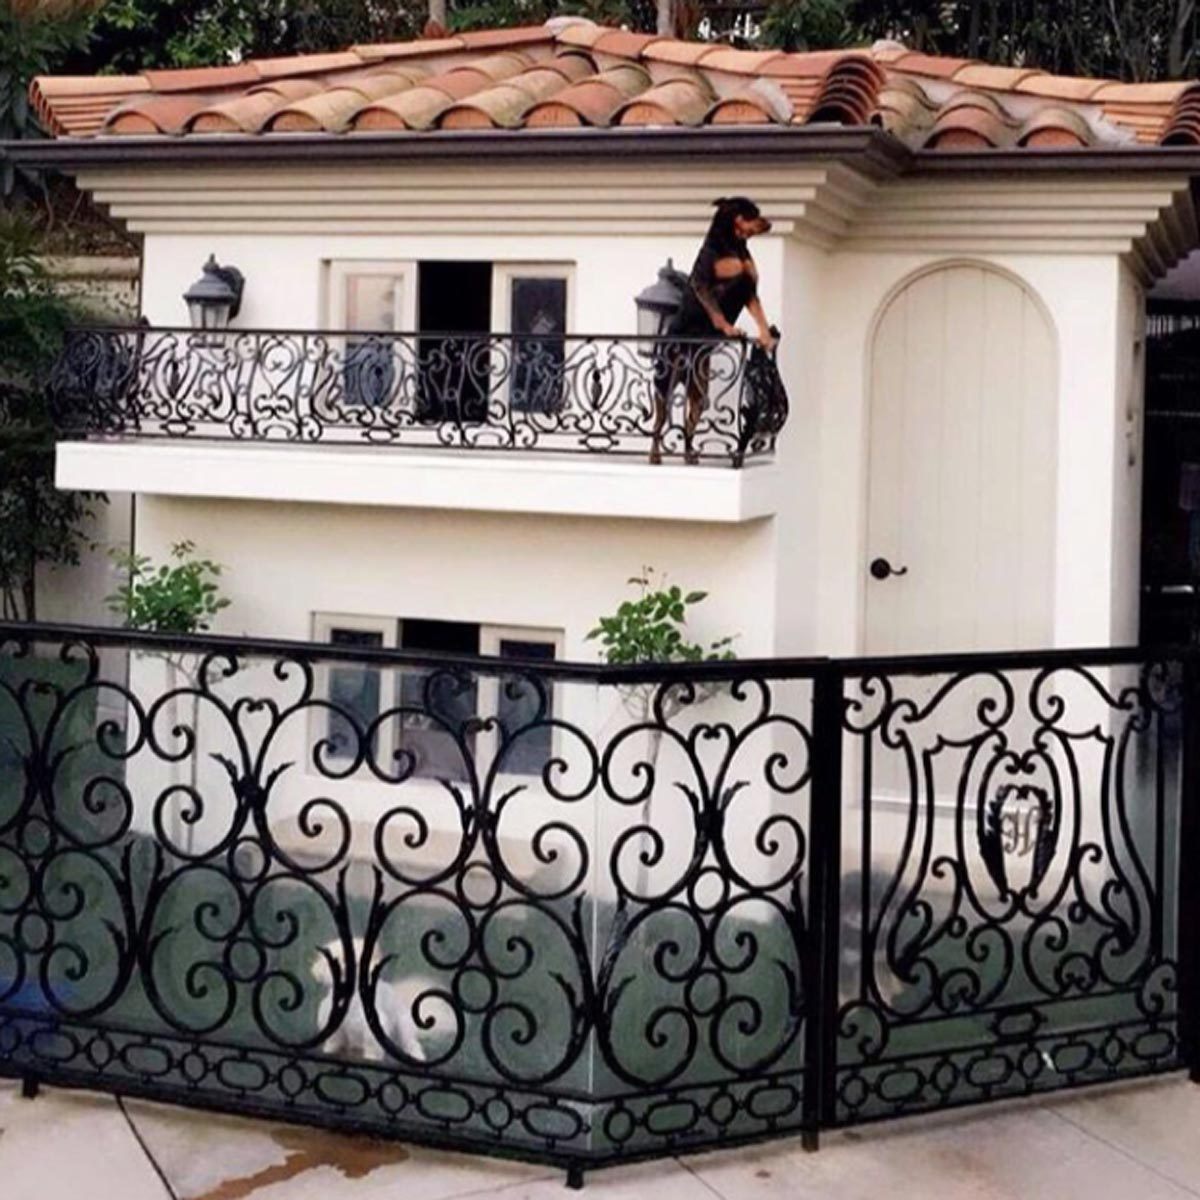 paris hilton mini mansion dog house